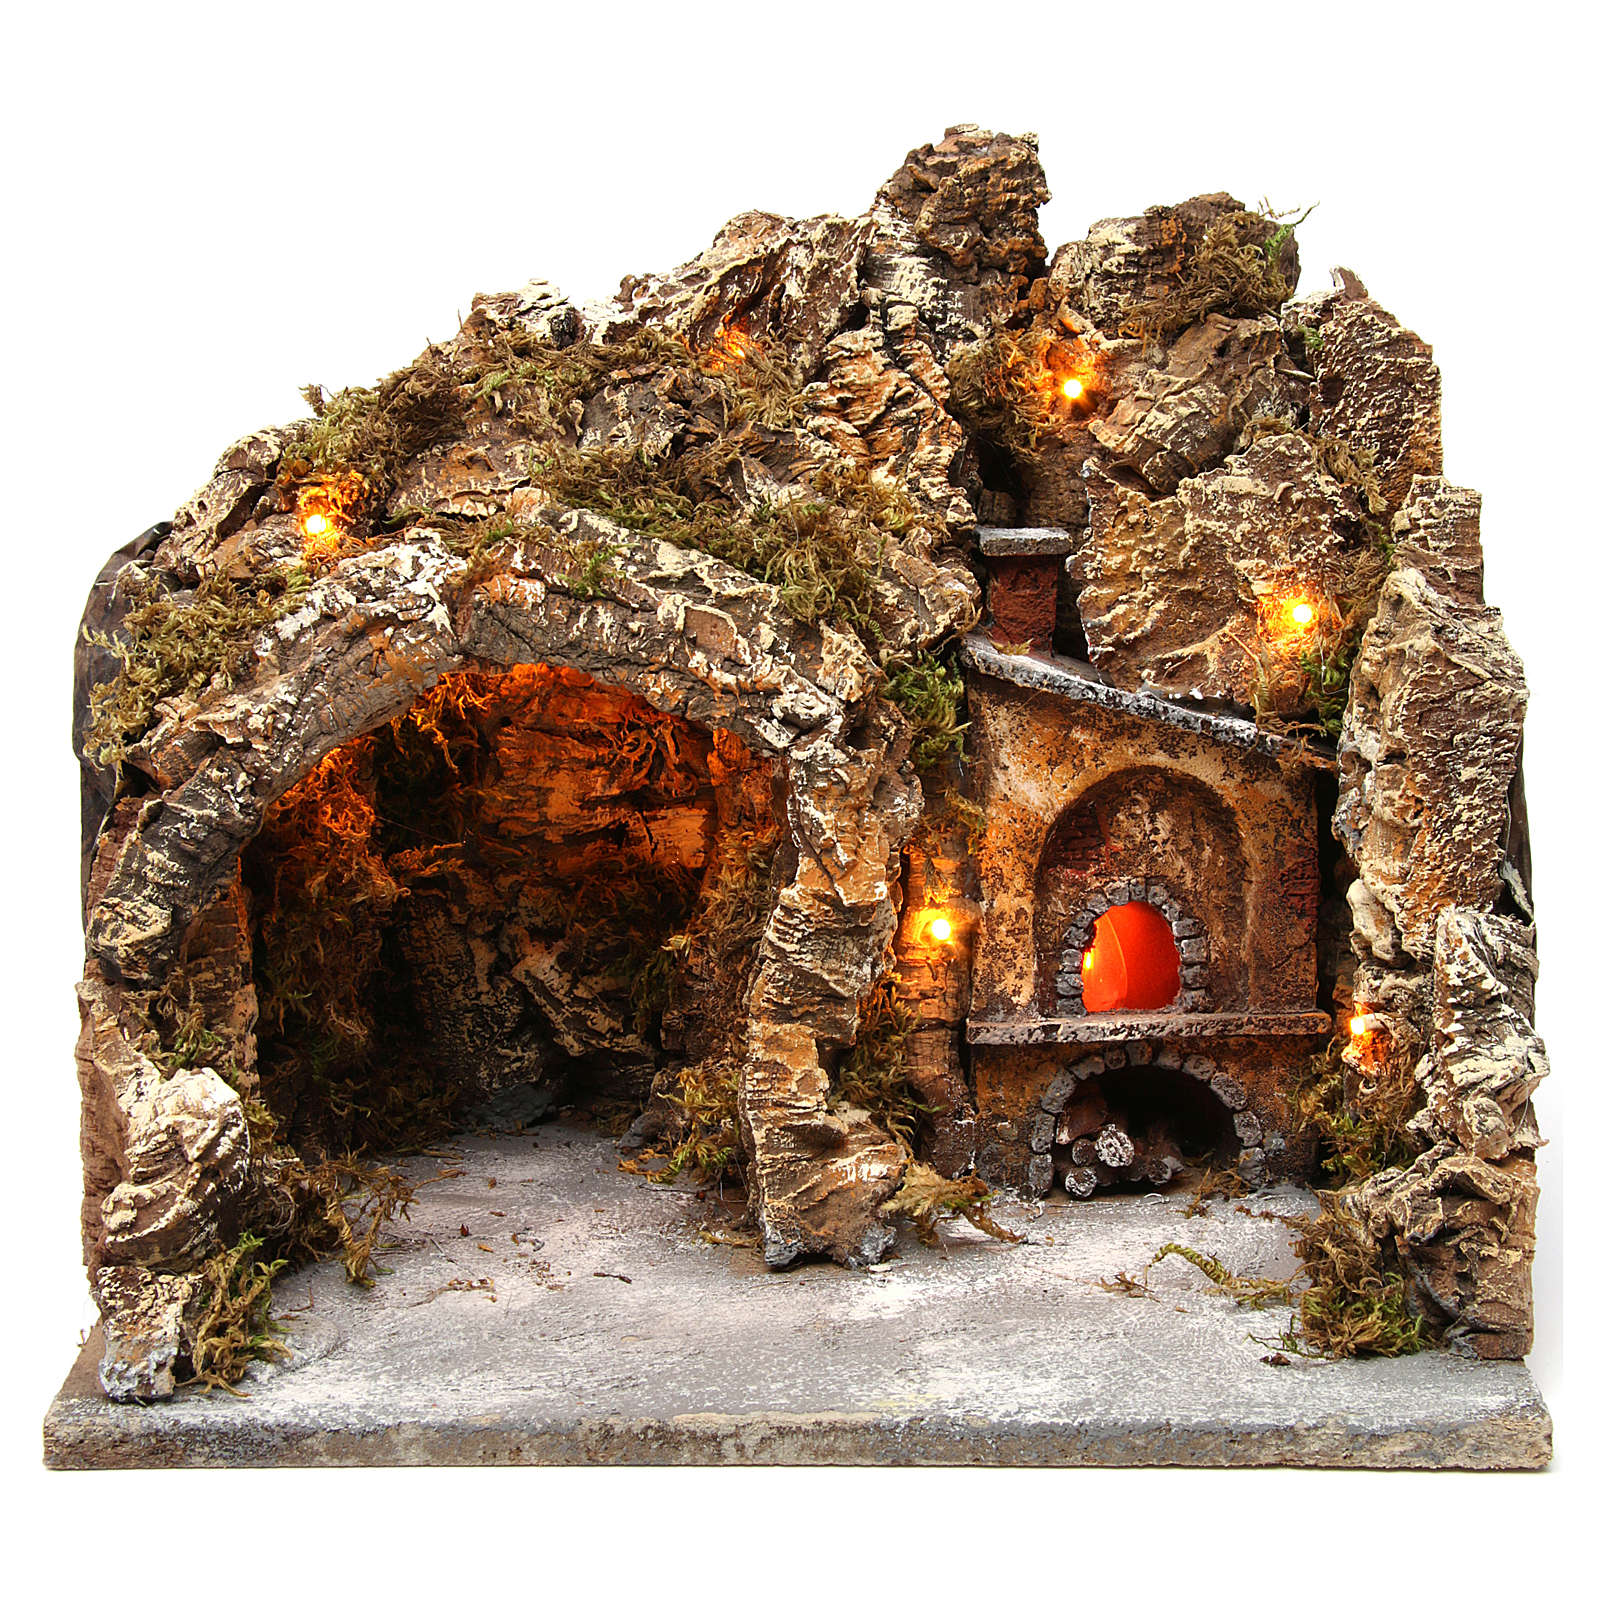 Cave with oven with lights and external lights wood and cork 30X35X30 cm Neapolitan nativity 4